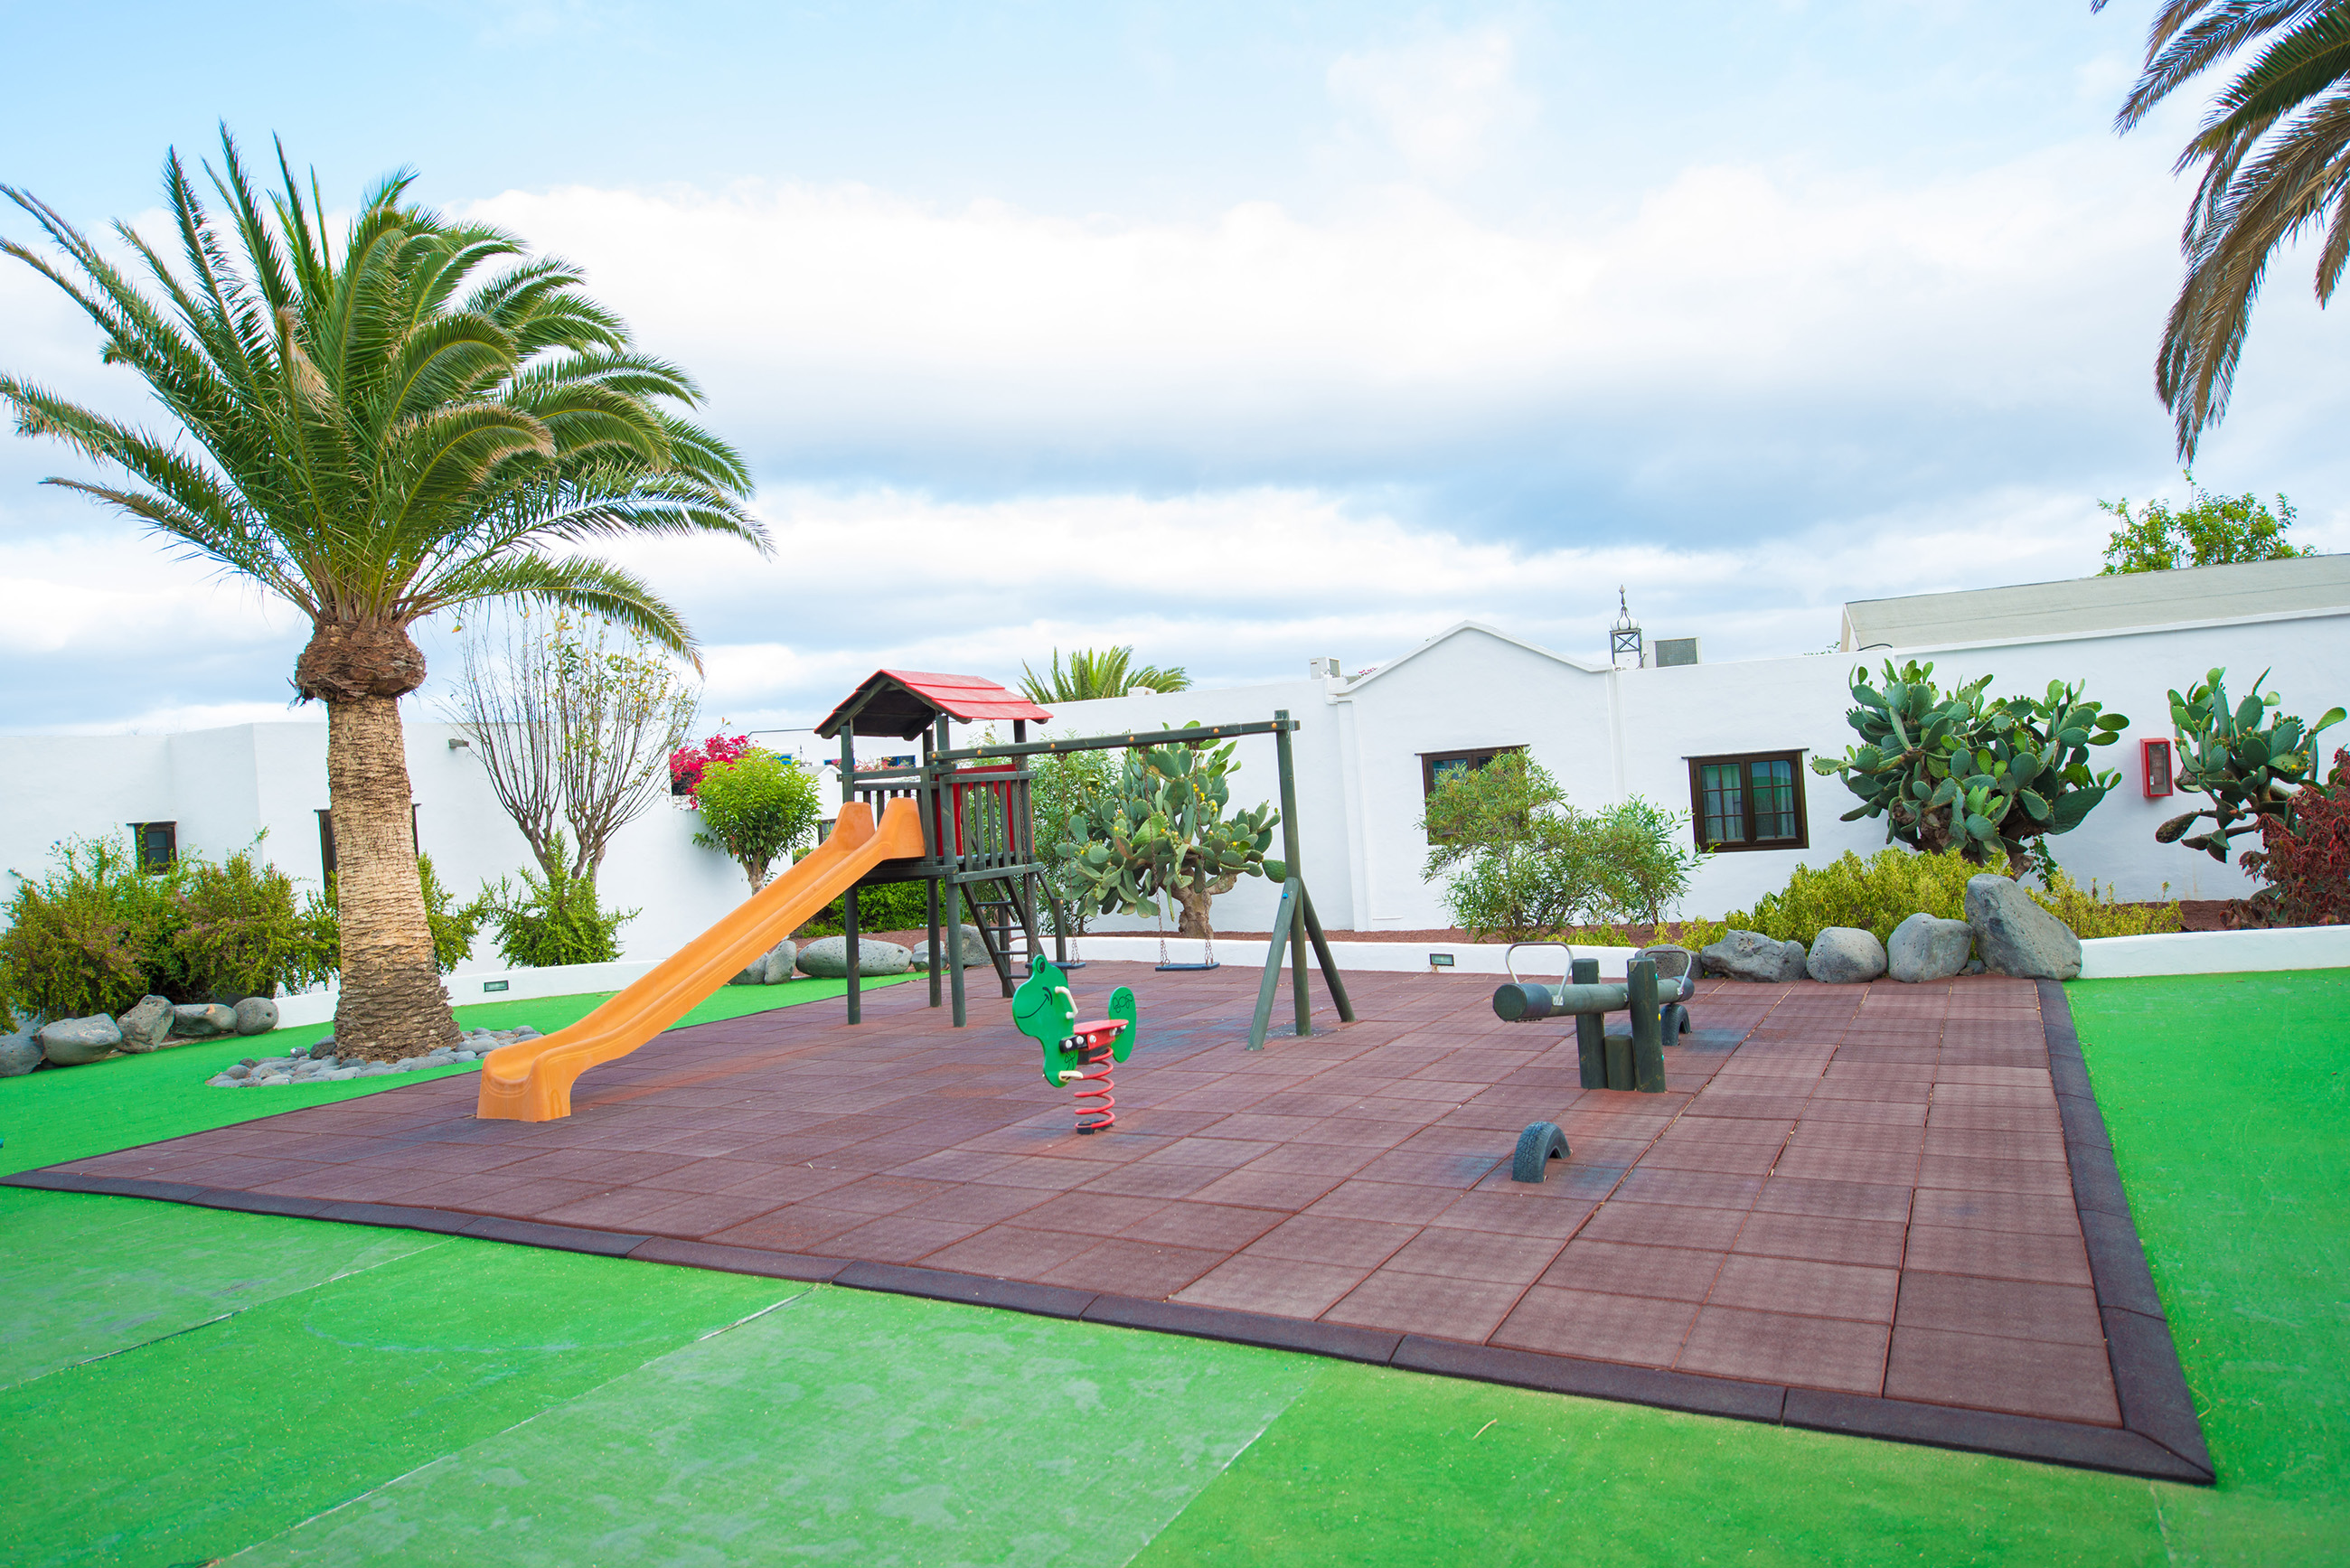 Las Casitas Playground 3